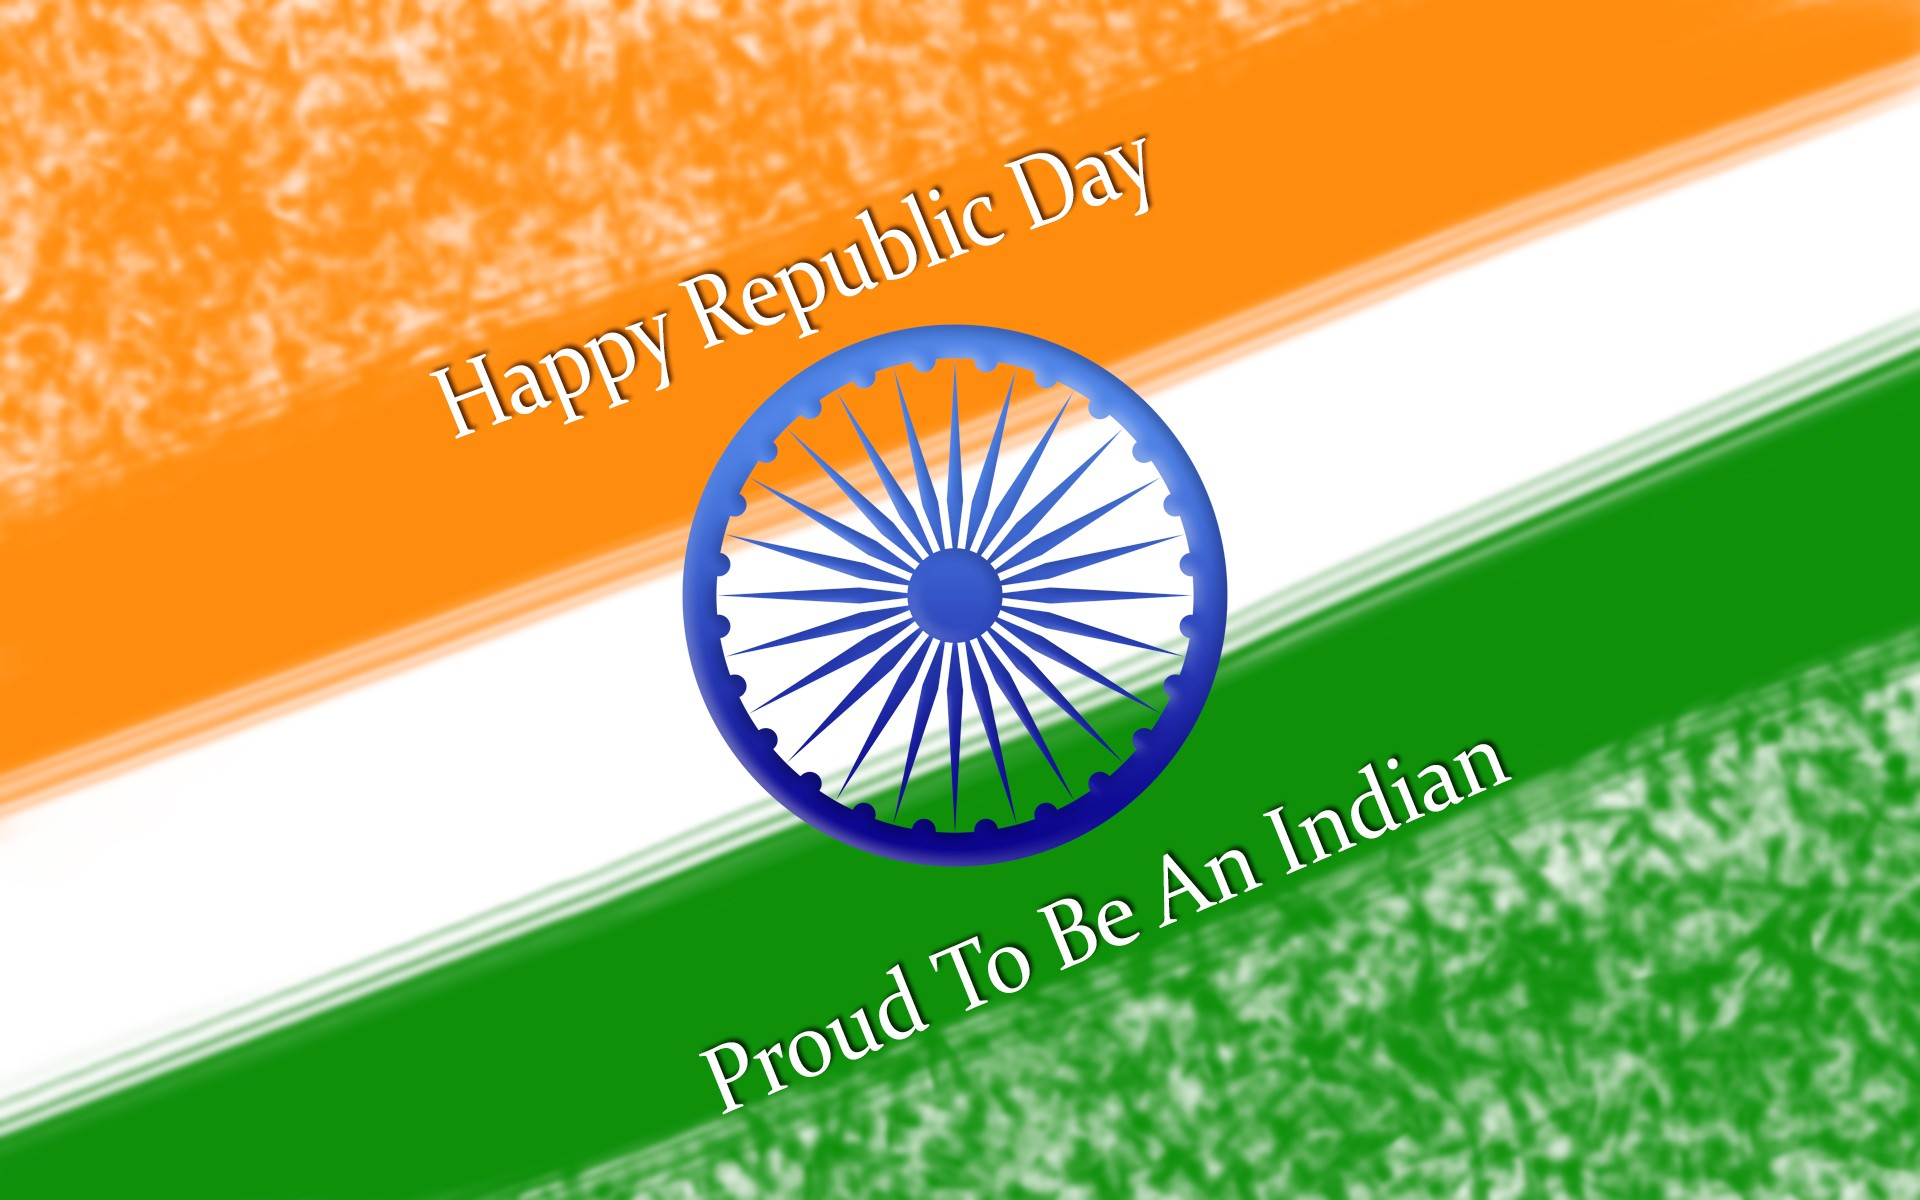 essay on the republic day of india